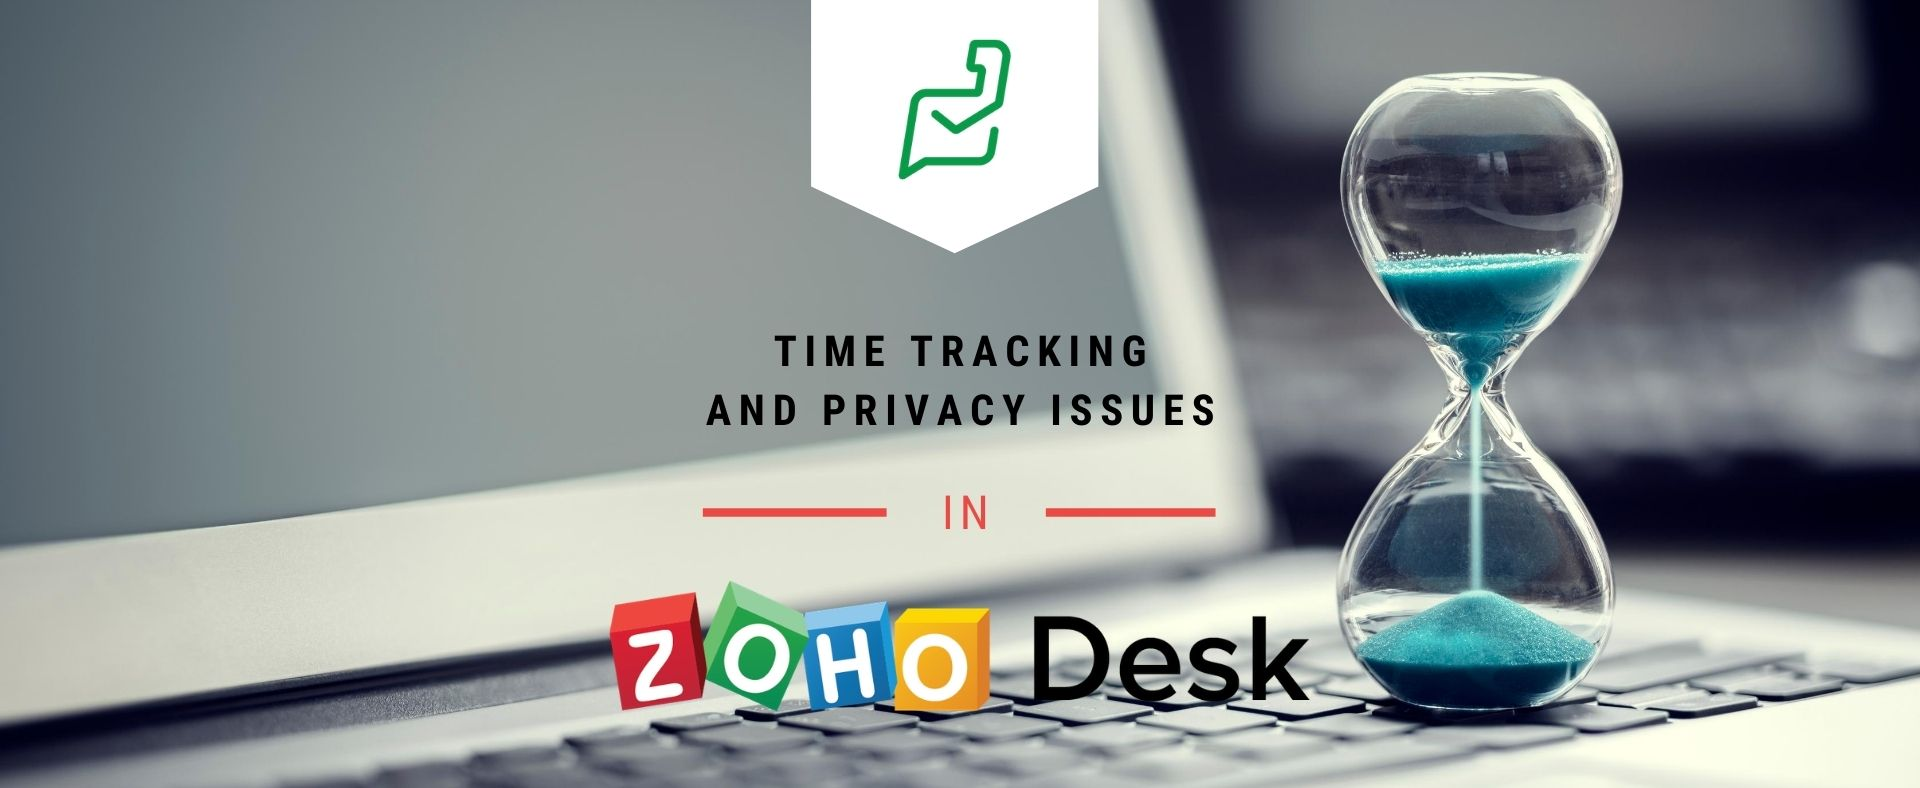 Time Tracking in Zoho Desk and the Salary Privacy Issues